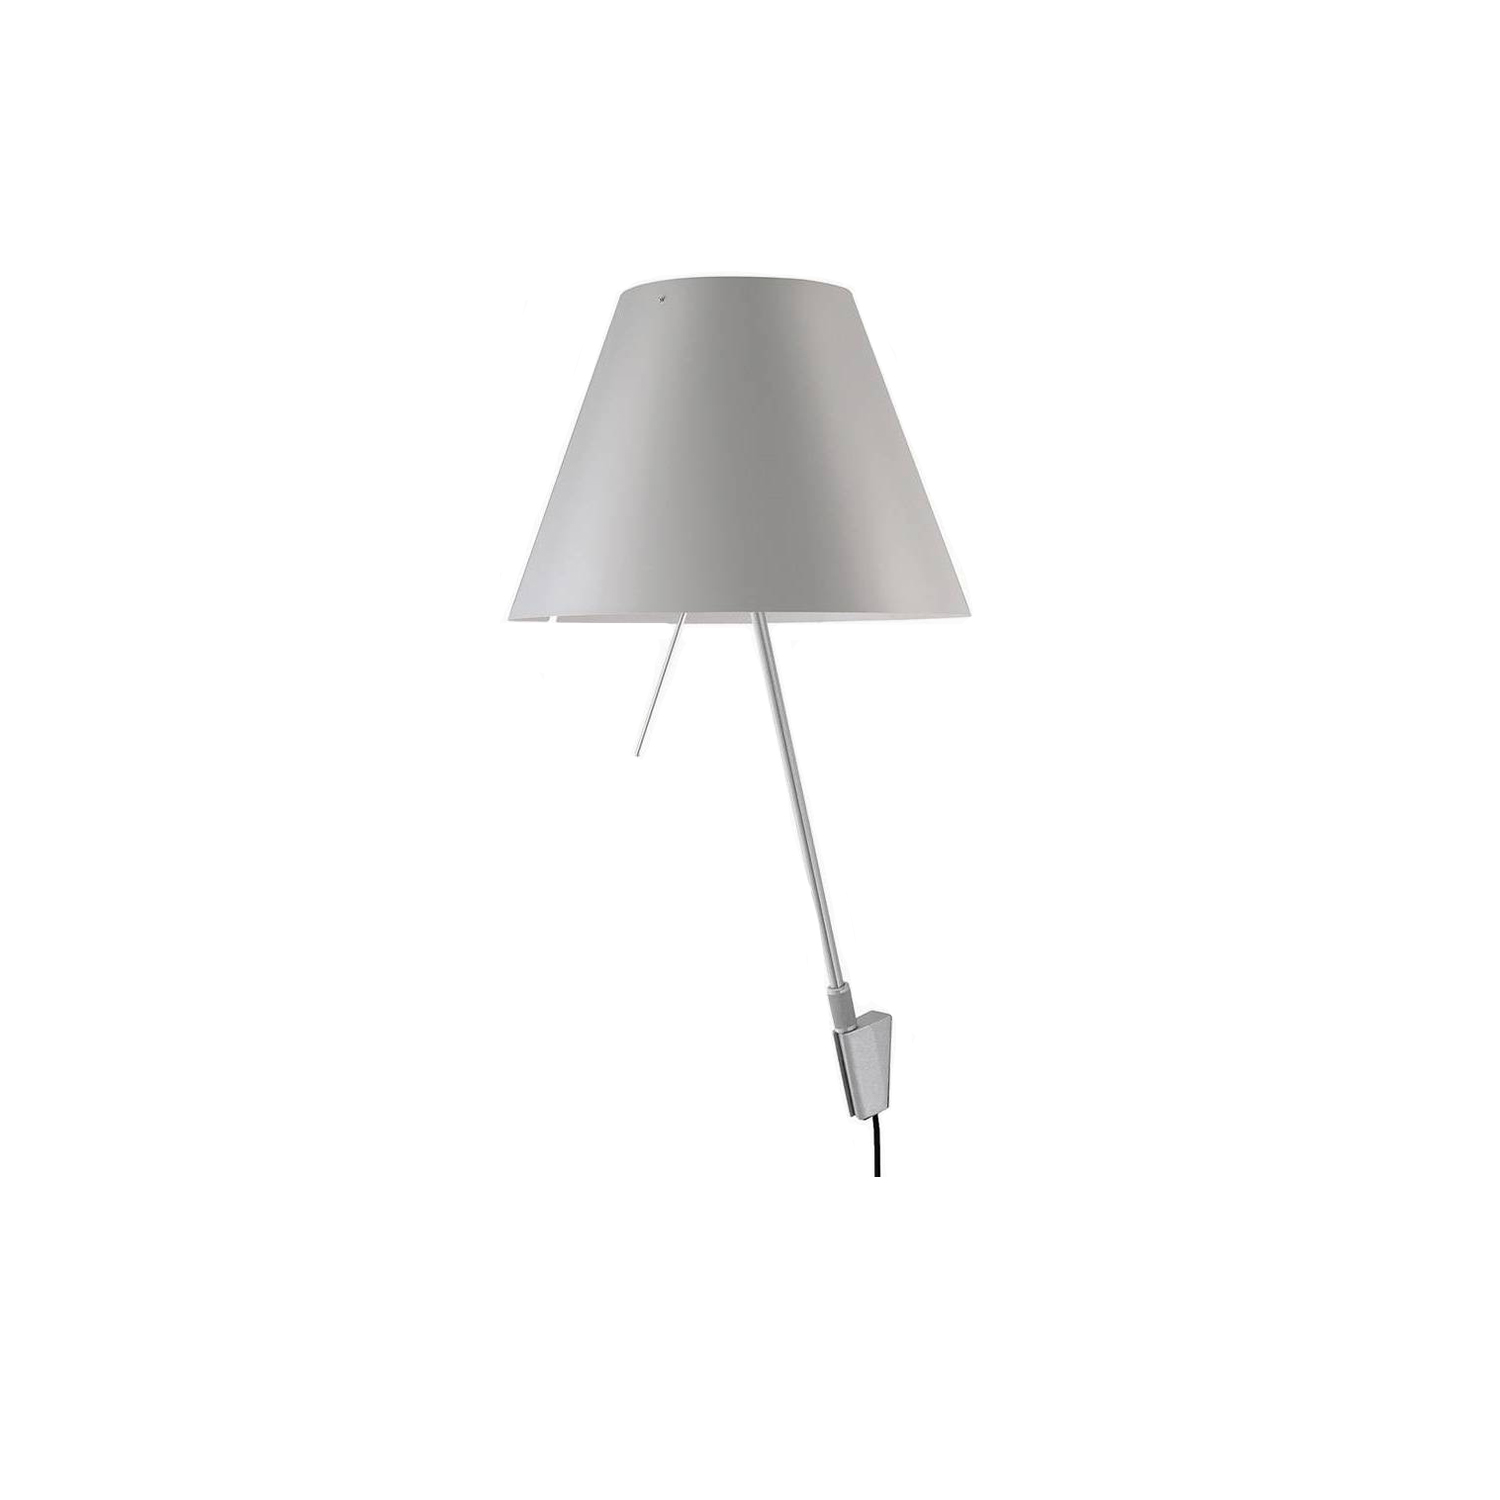 Costanza Wall Lamp - Slender and discrete, this lamp fits easily into any context, public or private. The handy rod near the light source makes it easy to turn the unit on or off.   | Matter of Stuff